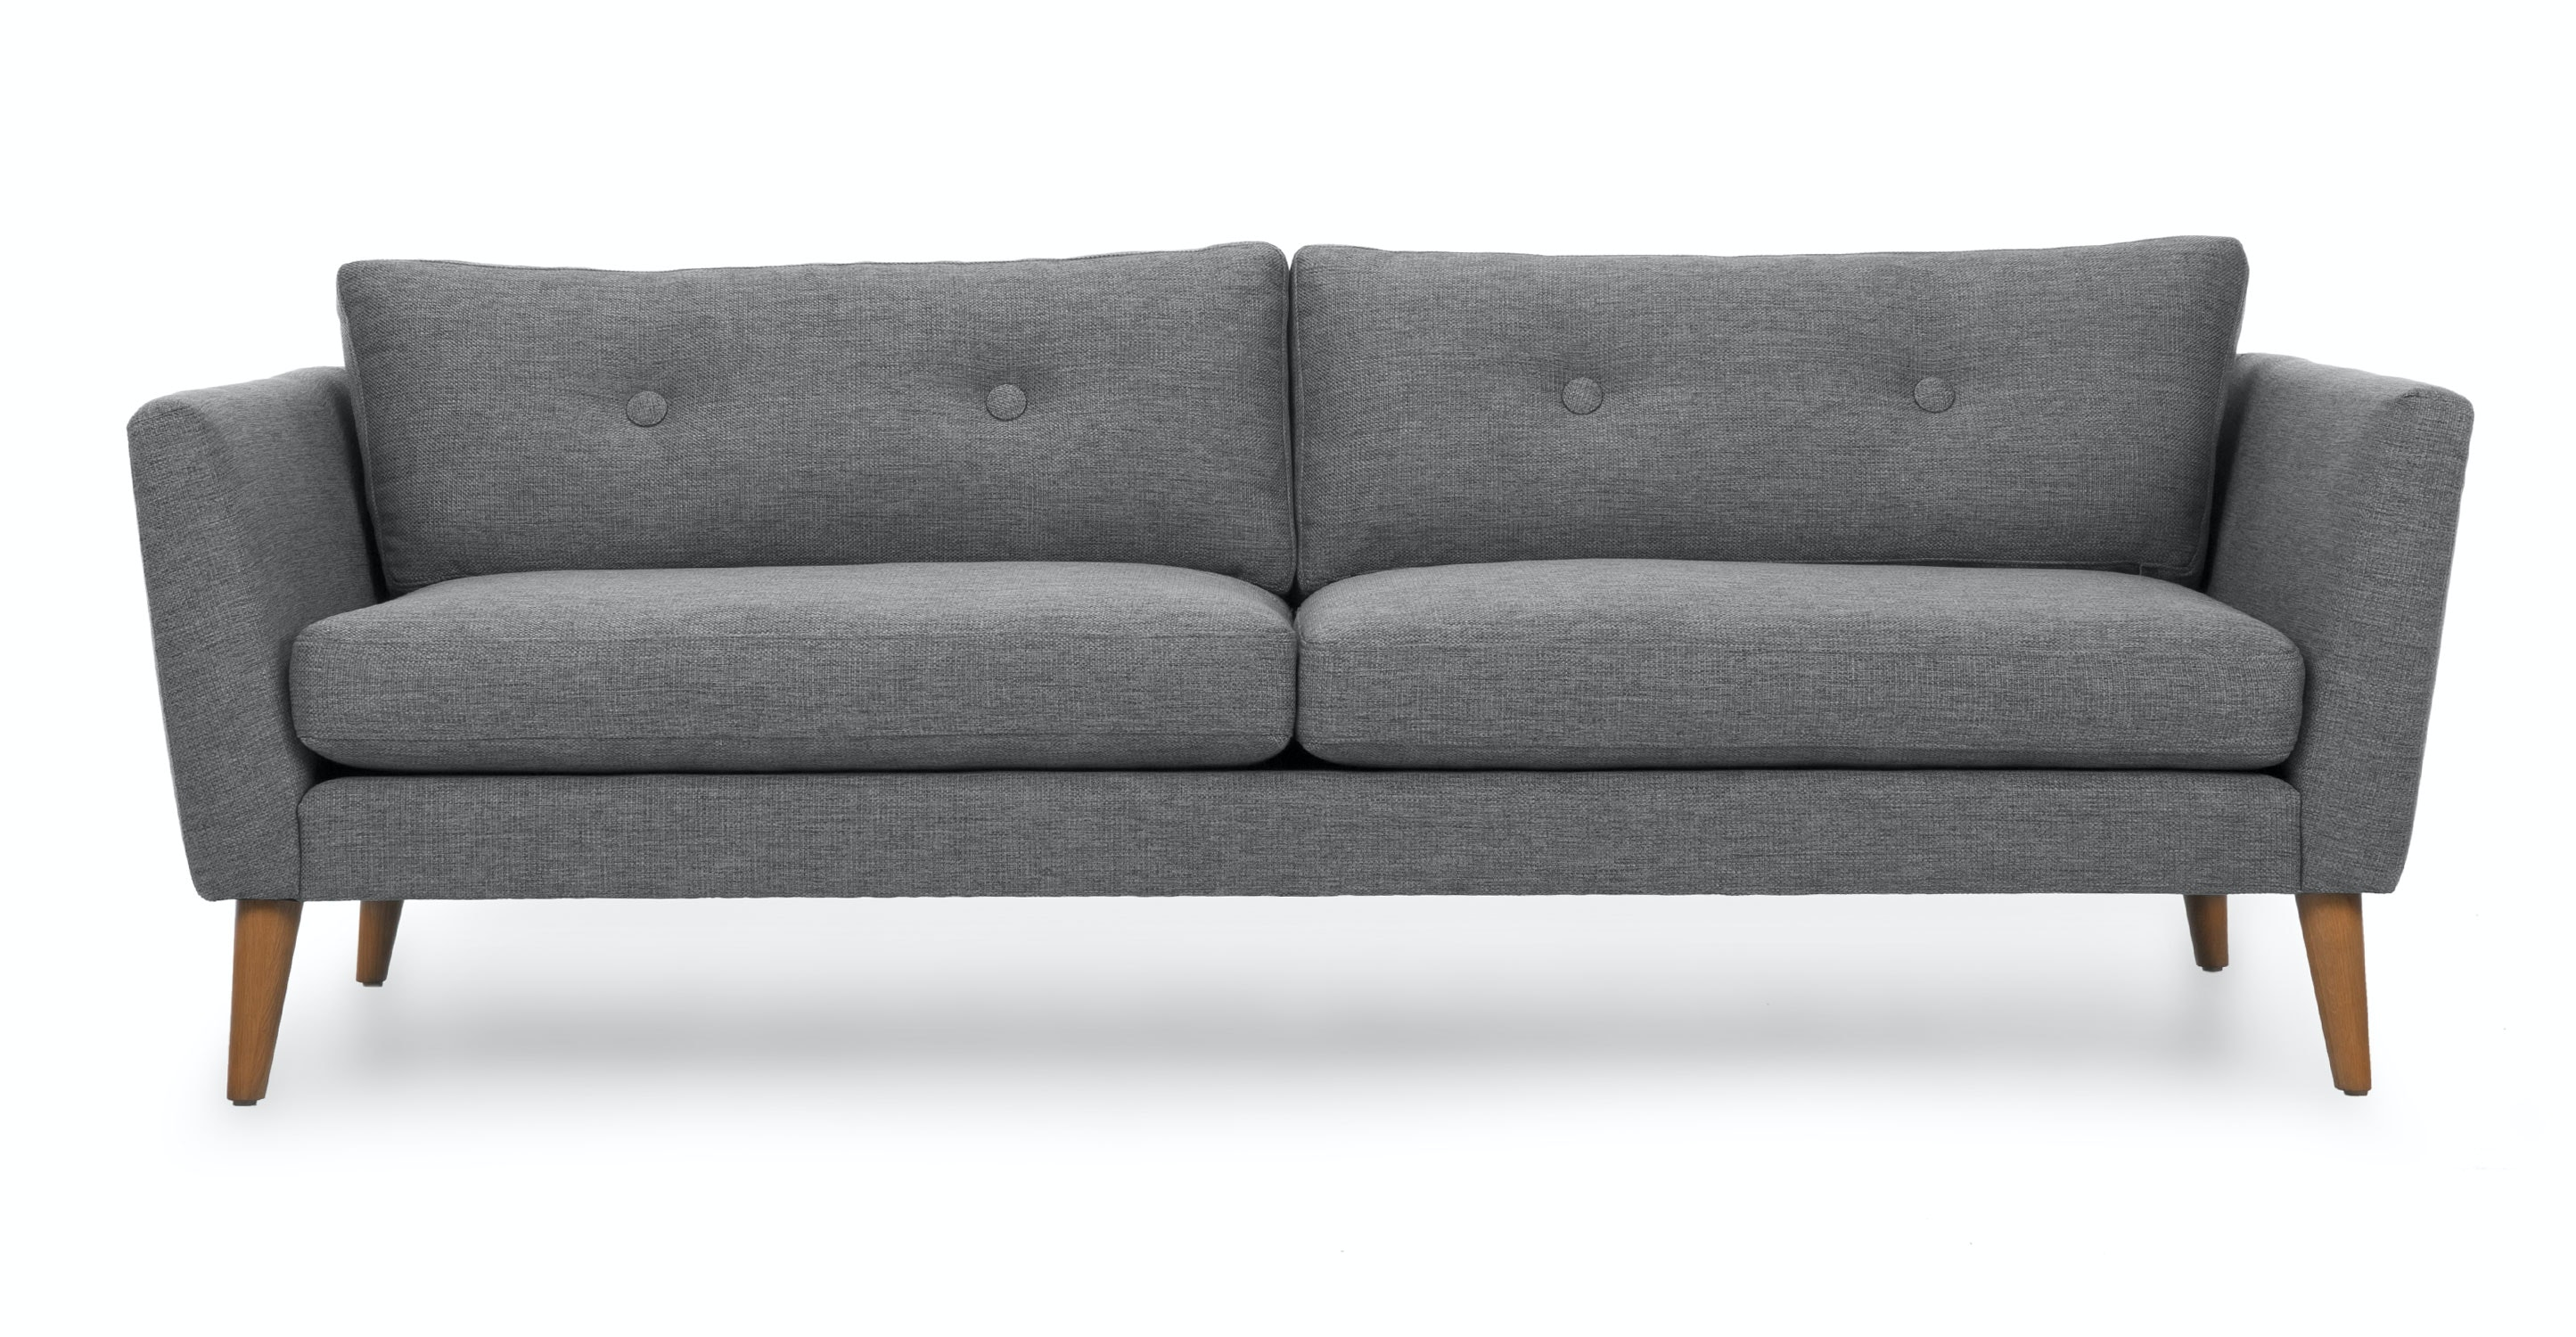 emil gravel gray sofa sofas article modern mid century and scandinavian furniture. Black Bedroom Furniture Sets. Home Design Ideas